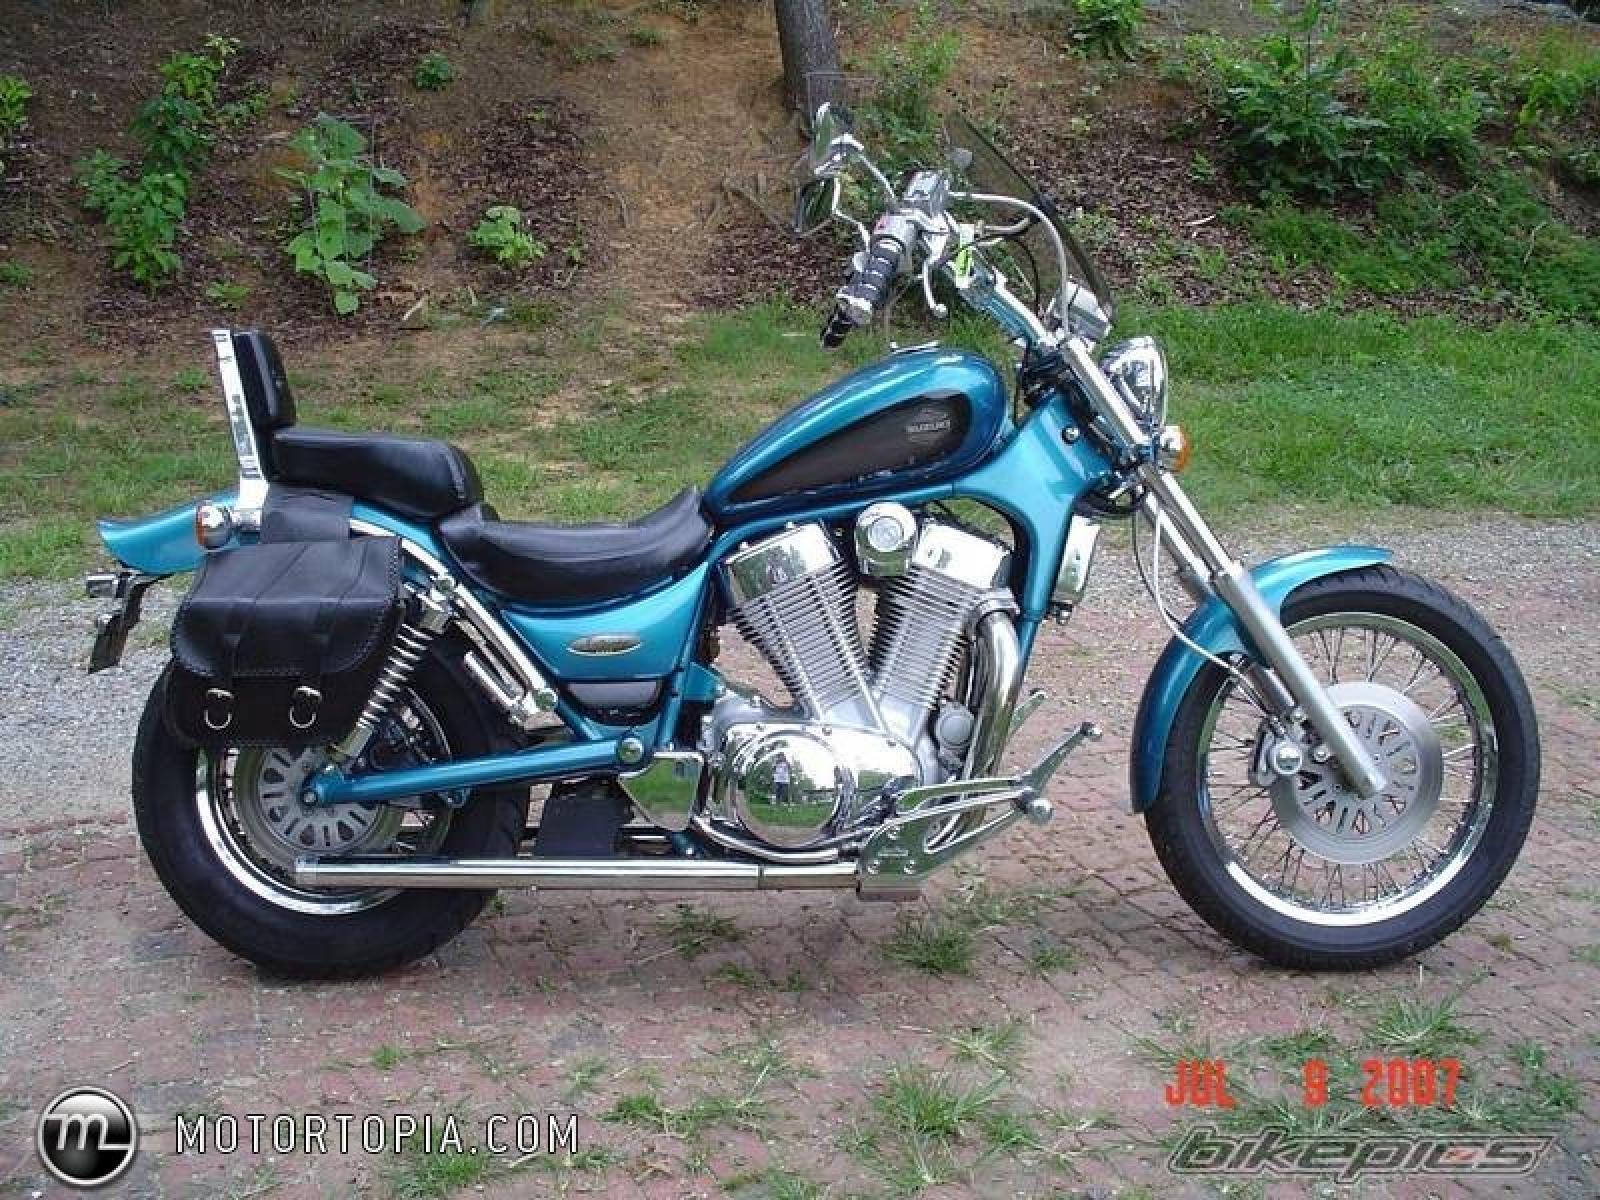 1995 suzuki vs 1400 intruder moto zombdrive com. Black Bedroom Furniture Sets. Home Design Ideas